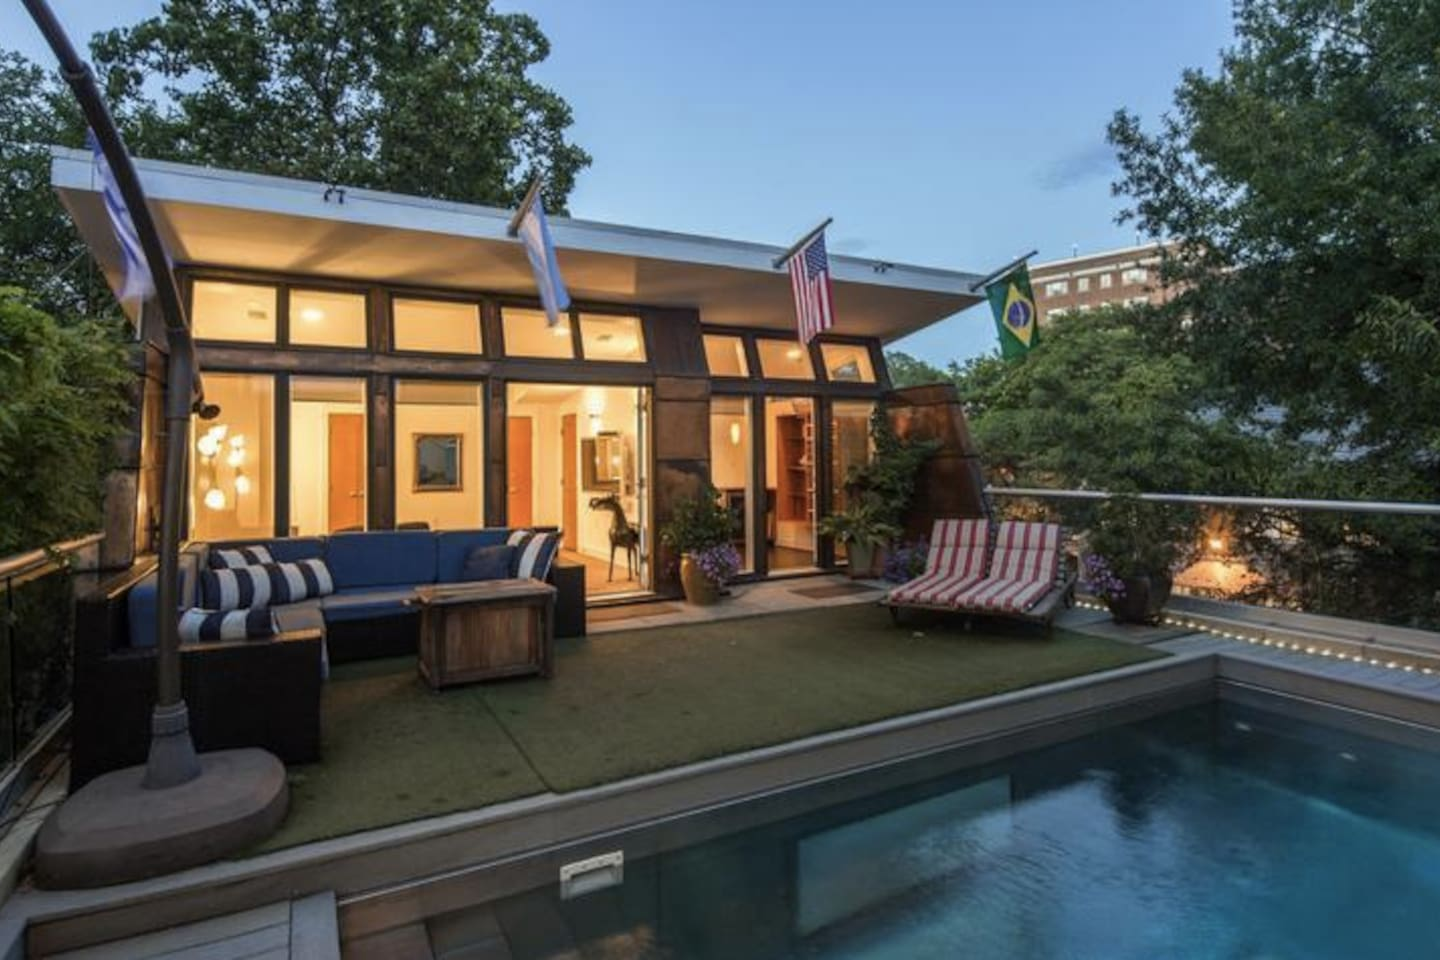 Celebrity Mansion NOT FOR EVENTS - Houses for Rent in Washington, District  of Columbia, United States